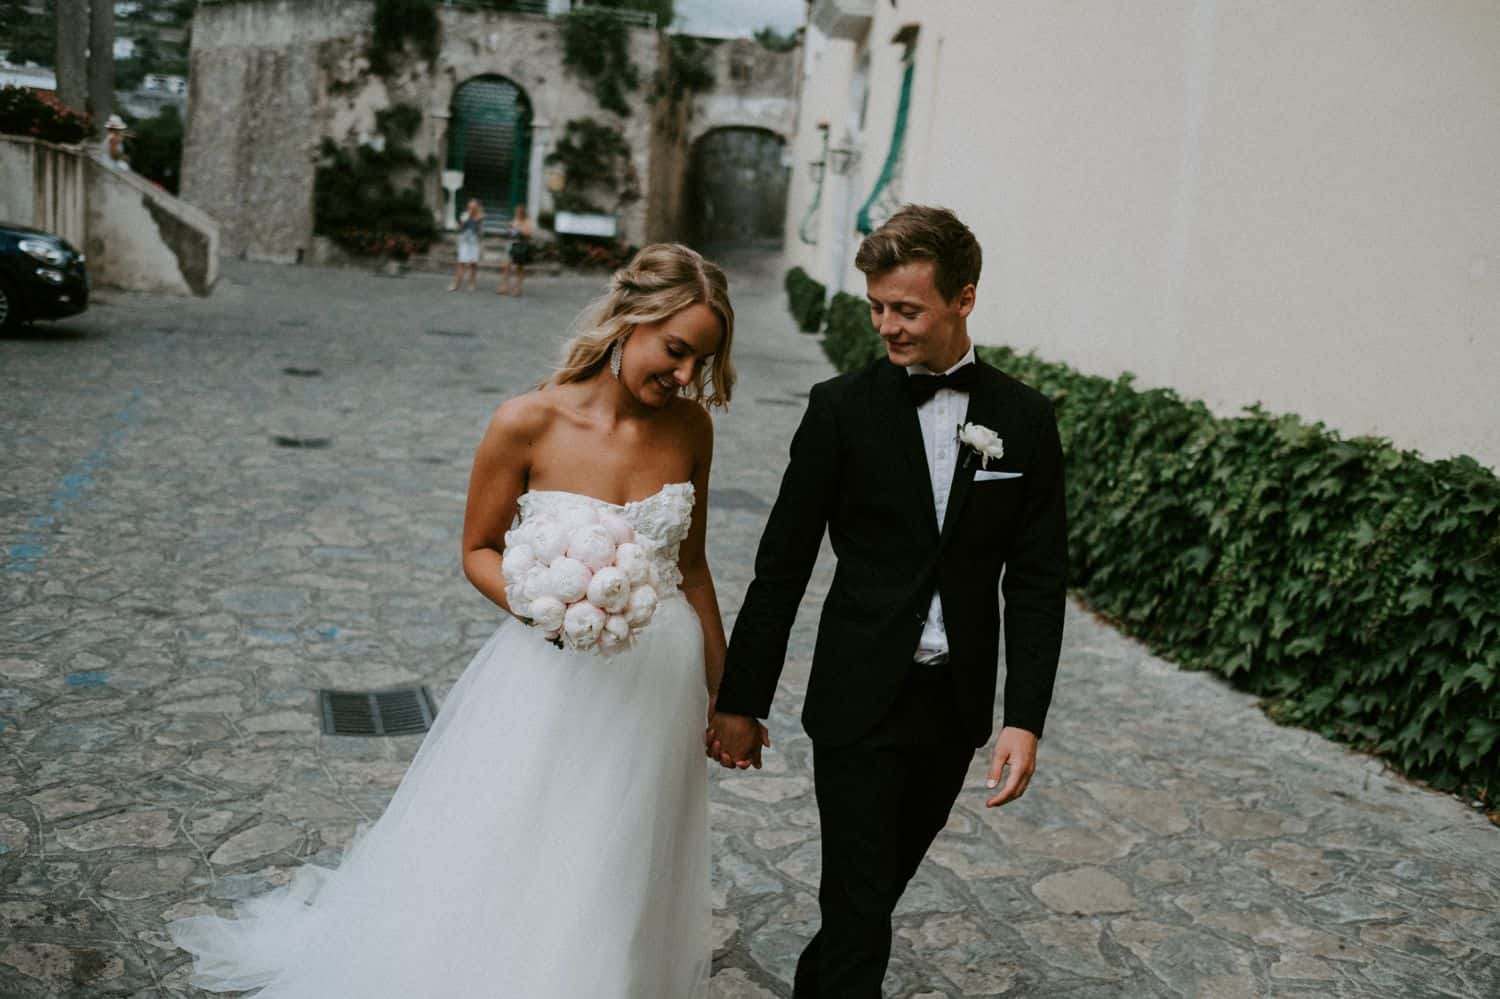 Van Middleton: Newlyweds stroll down cobblestone alley.